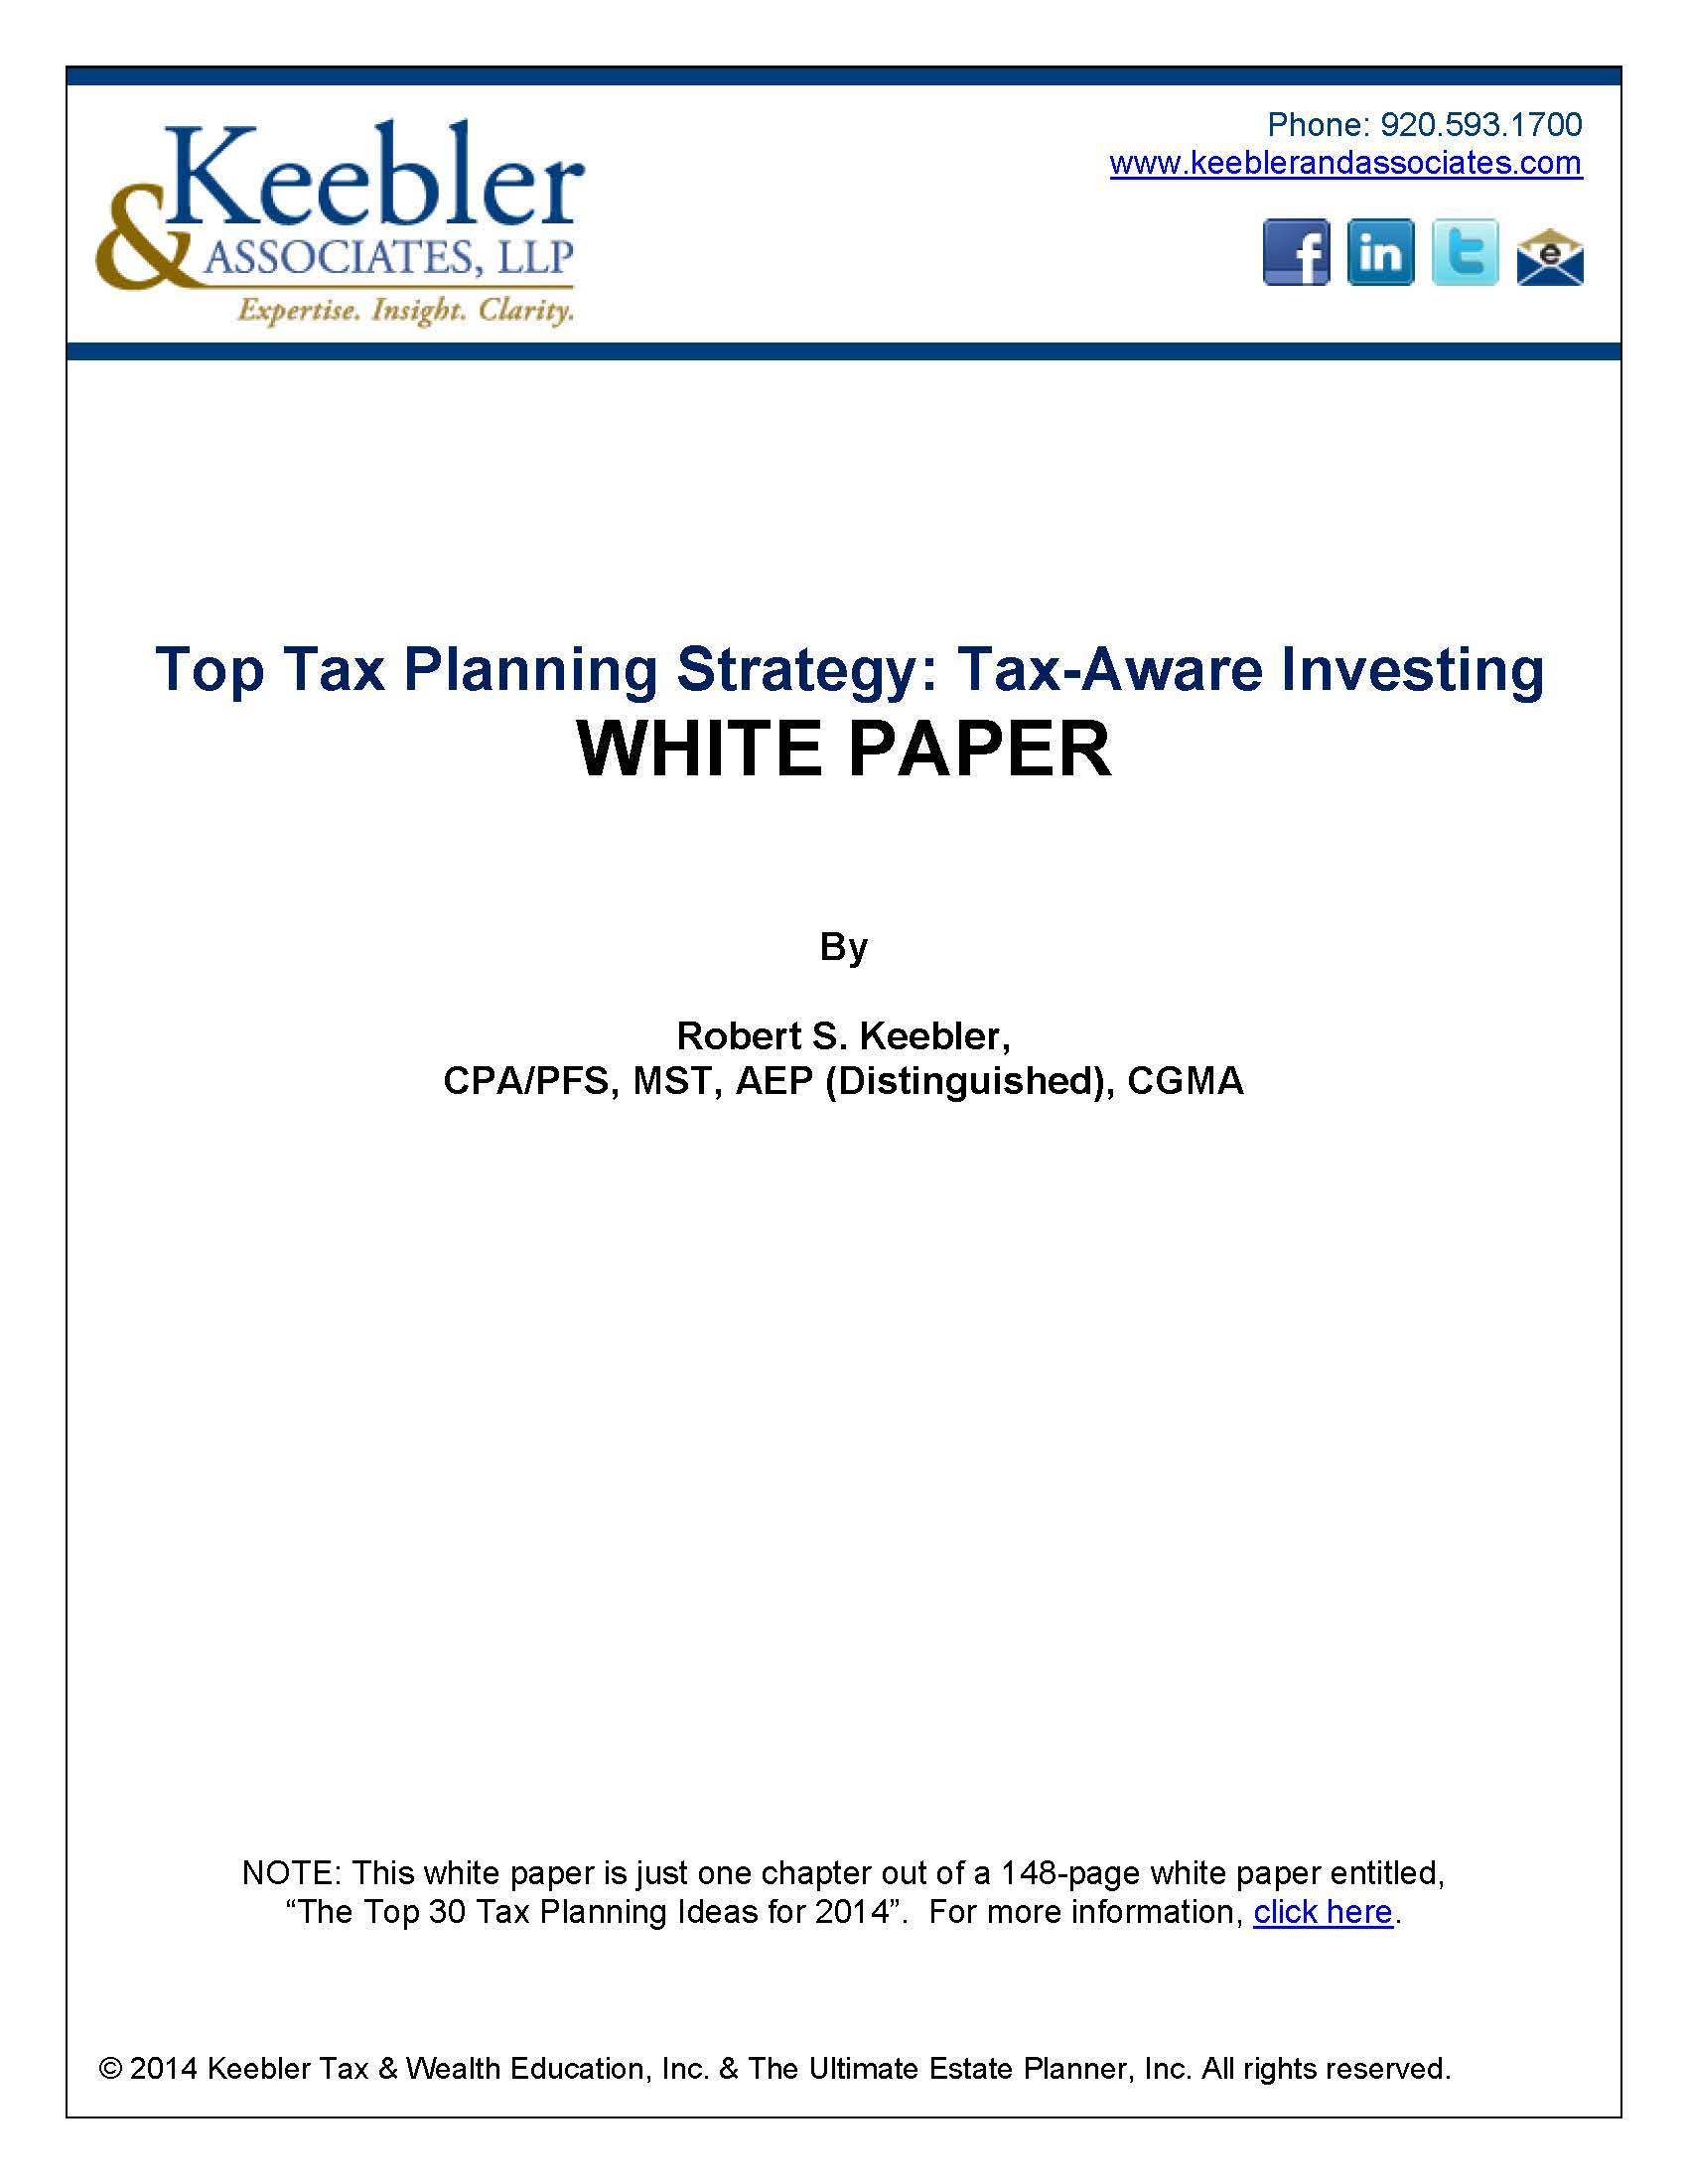 WP-TaxAwareInvestingCover